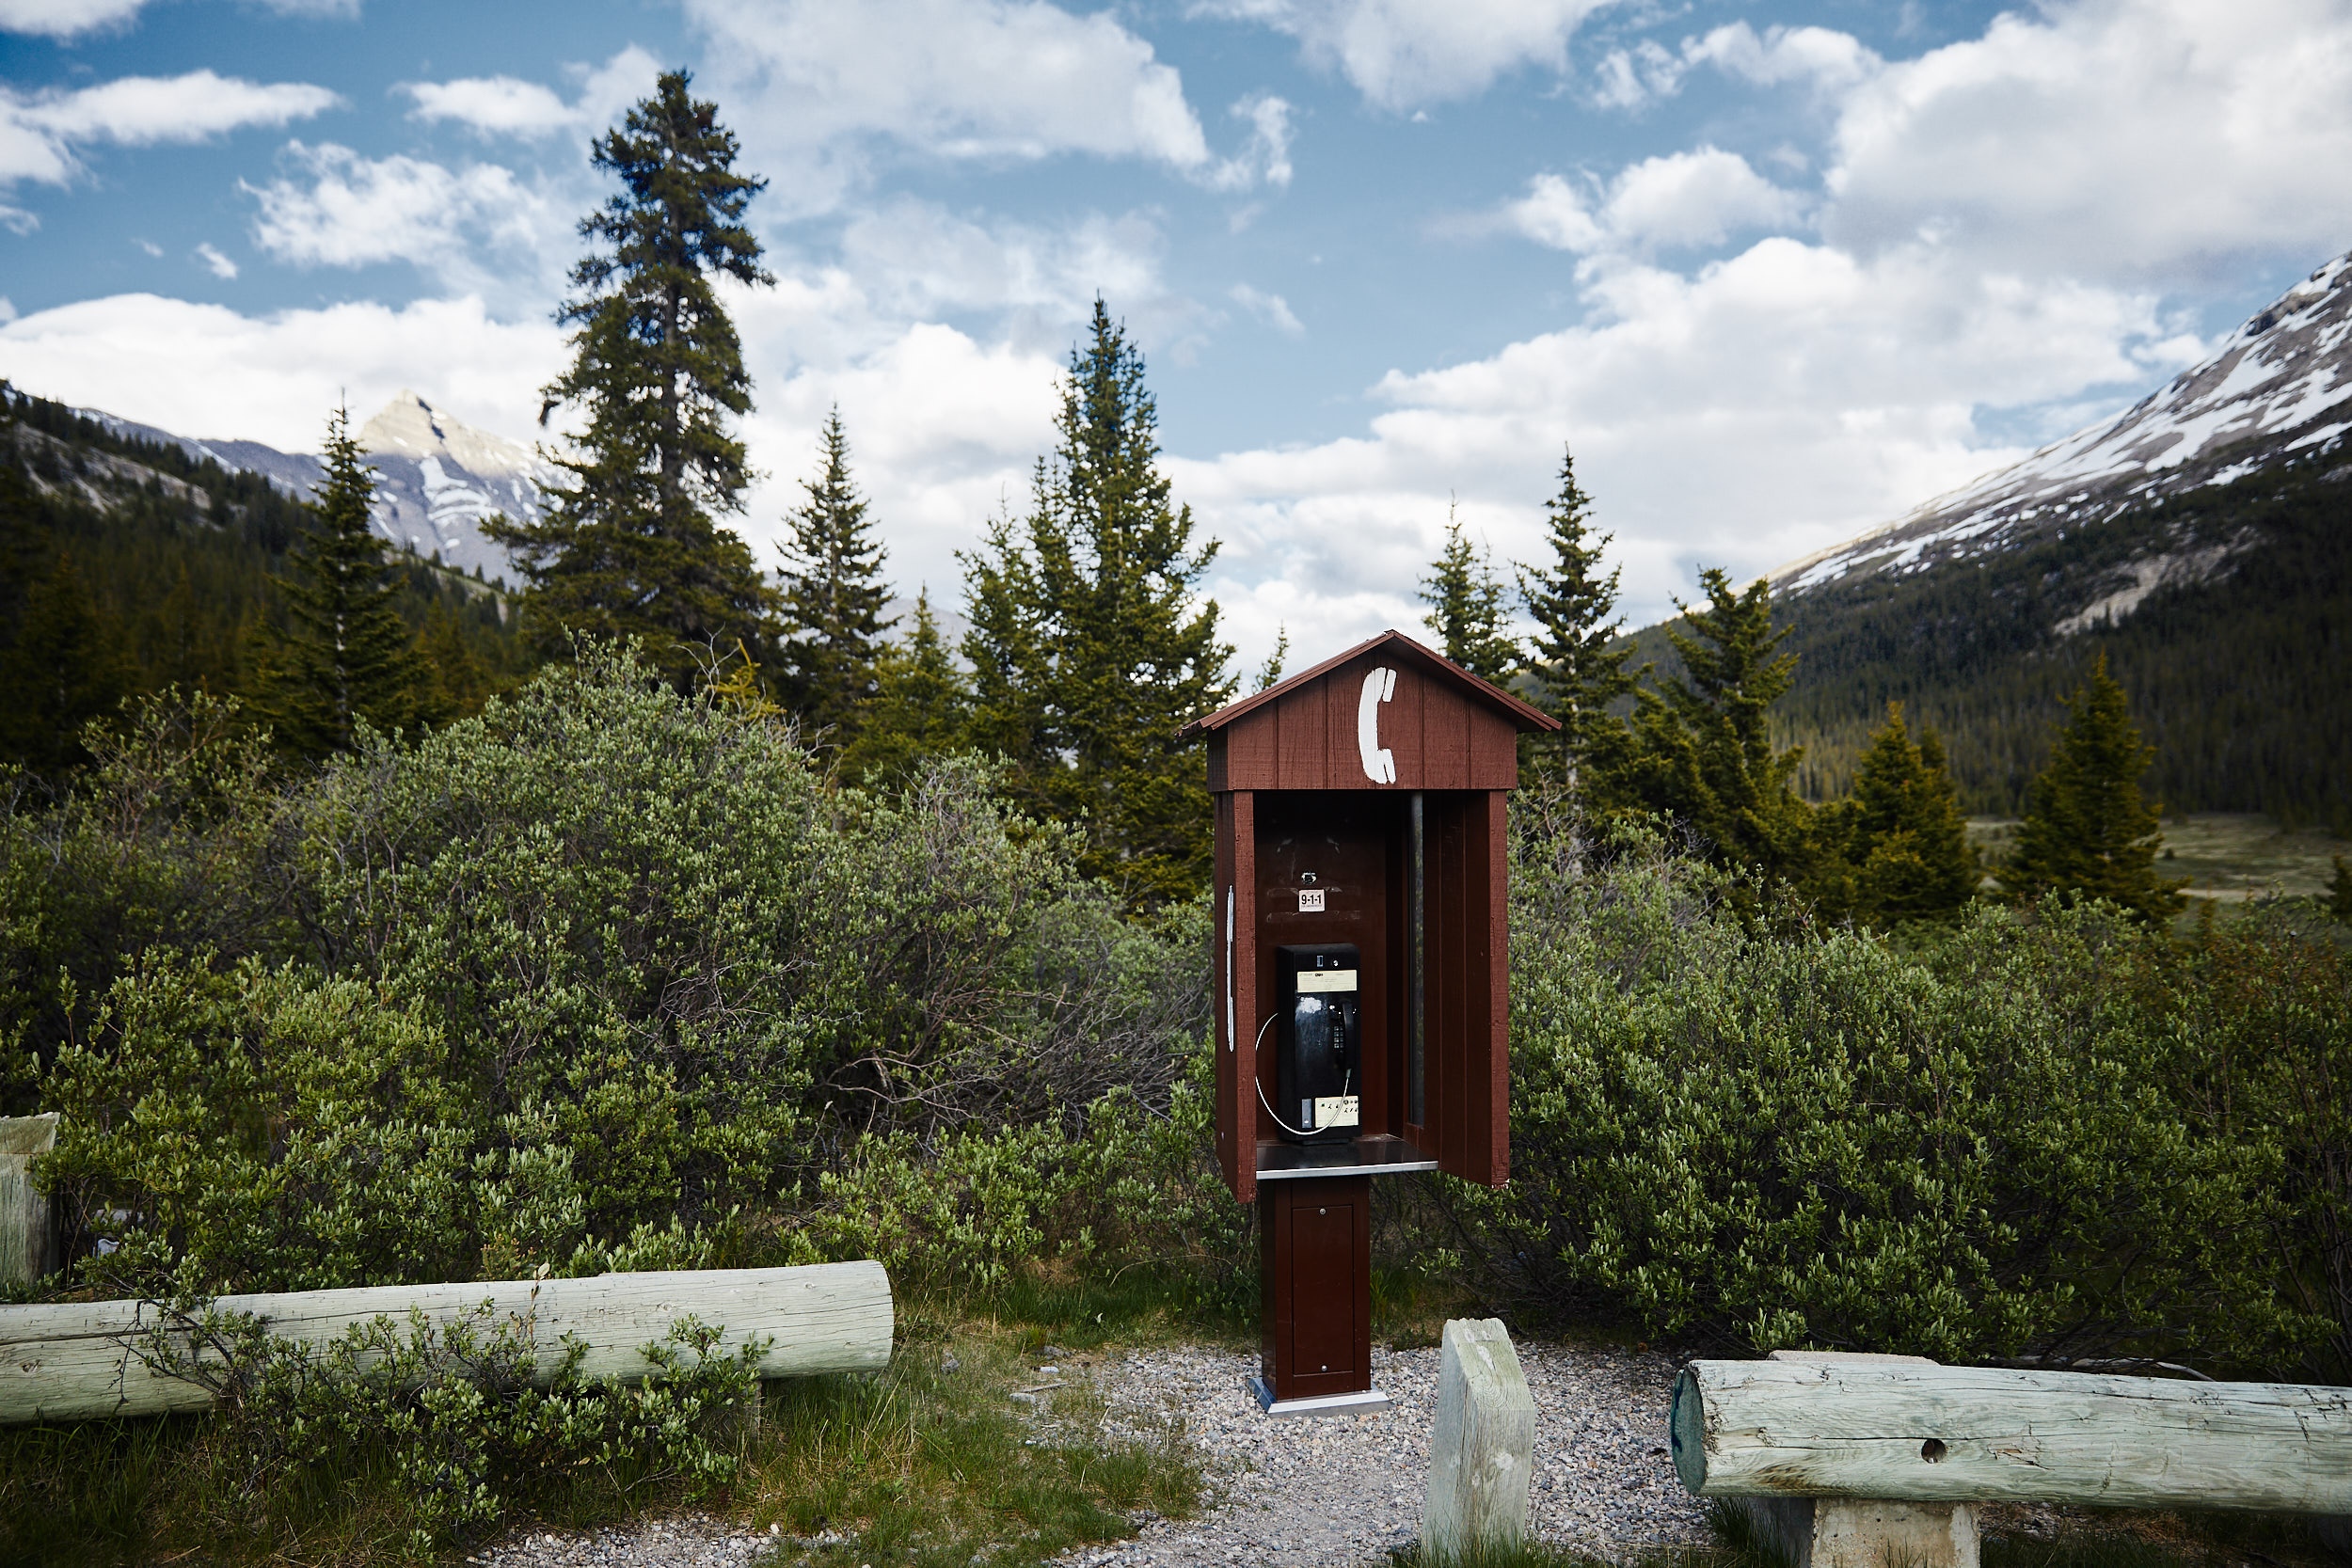 There is zero cell reception for the entire 230km stetch of highway, so the only method of communication is with a handful of lone phone booths.